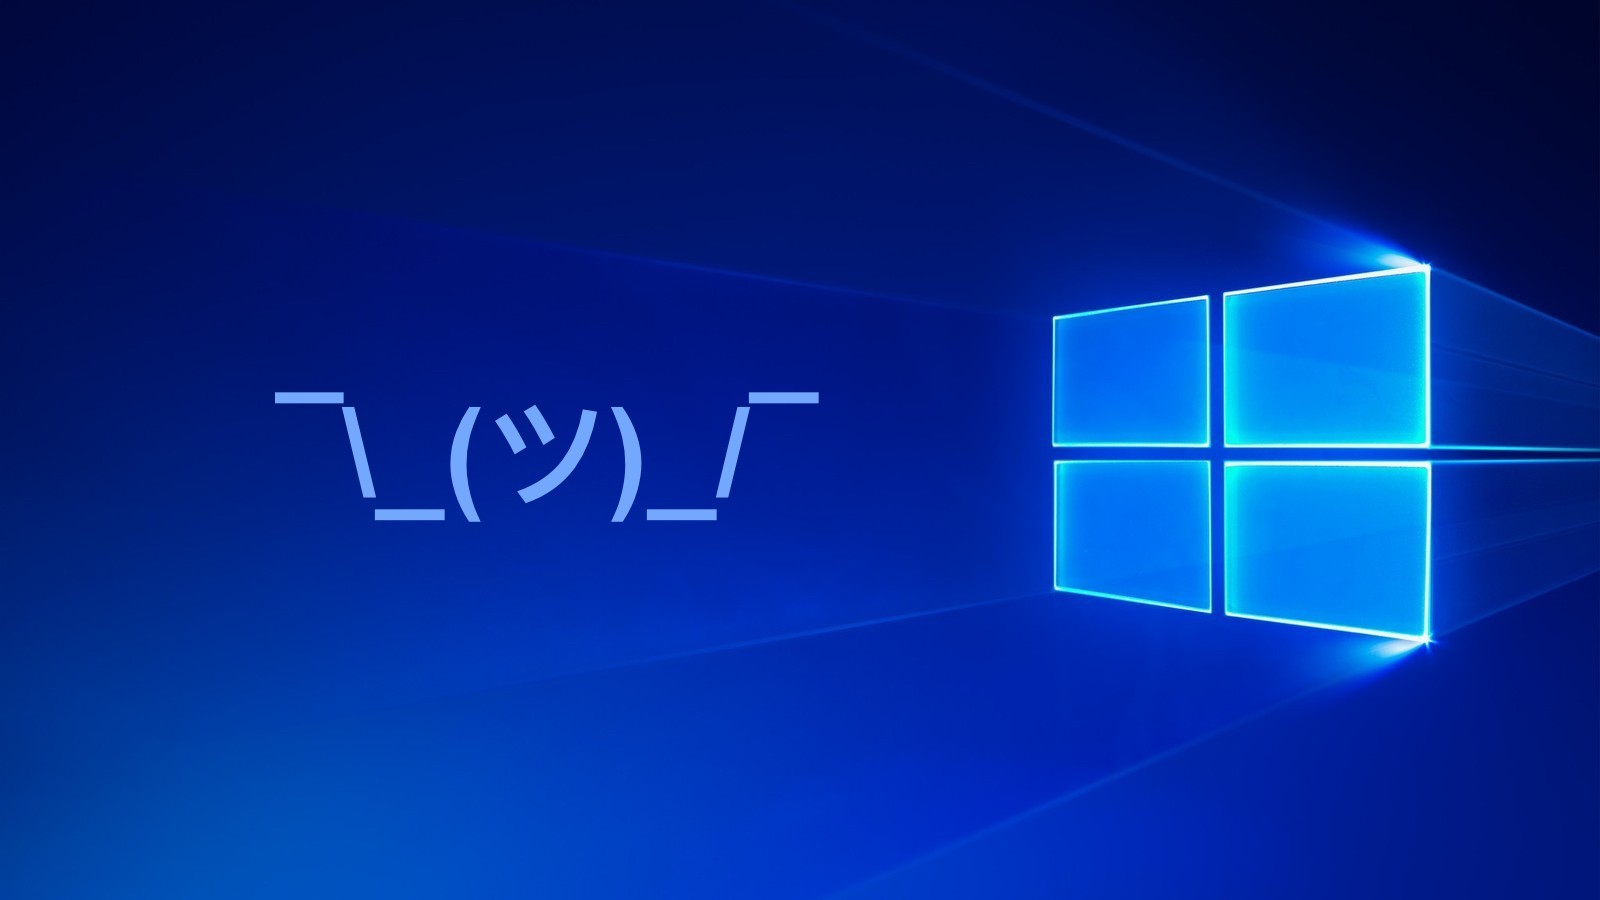 Windows 10 Users Report Bugs & BSOD After Installing Latest